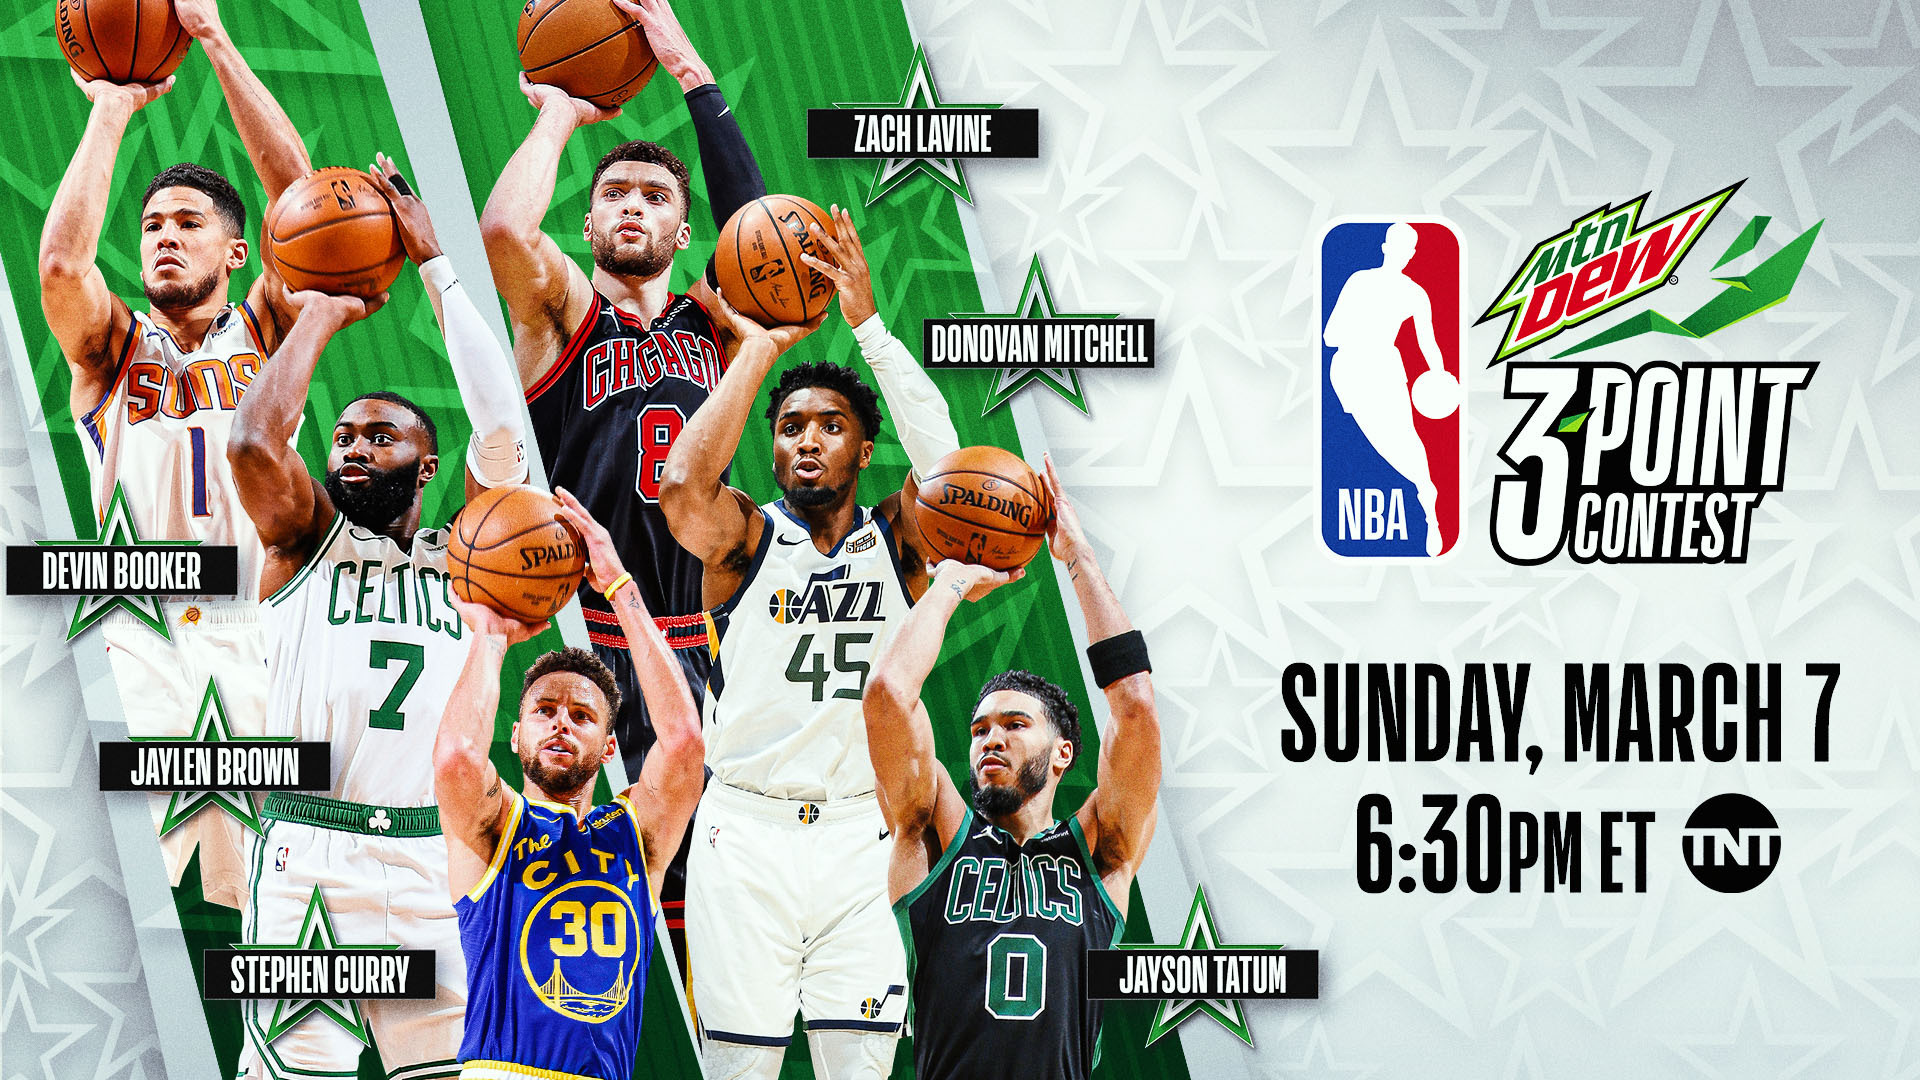 Past champions Devin Booker and Stephen Curry lead six NBA All-Stars in 2021 MTN DEW 3-Point Contest